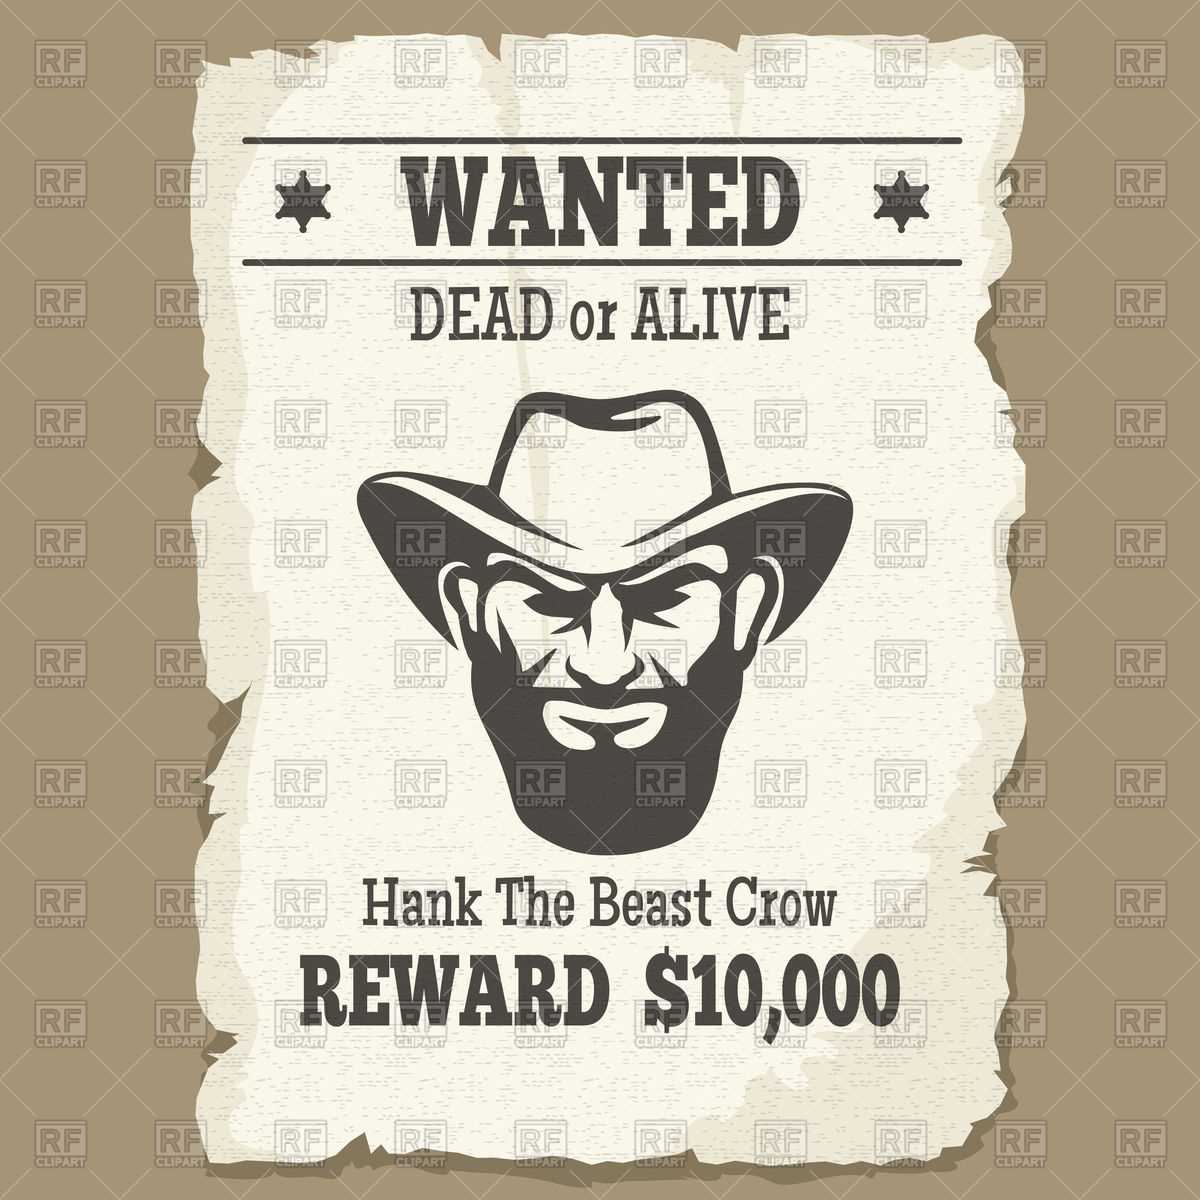 Wanted dead or alive icon, vintage western poster with cowboy face Stock  Vector Image.